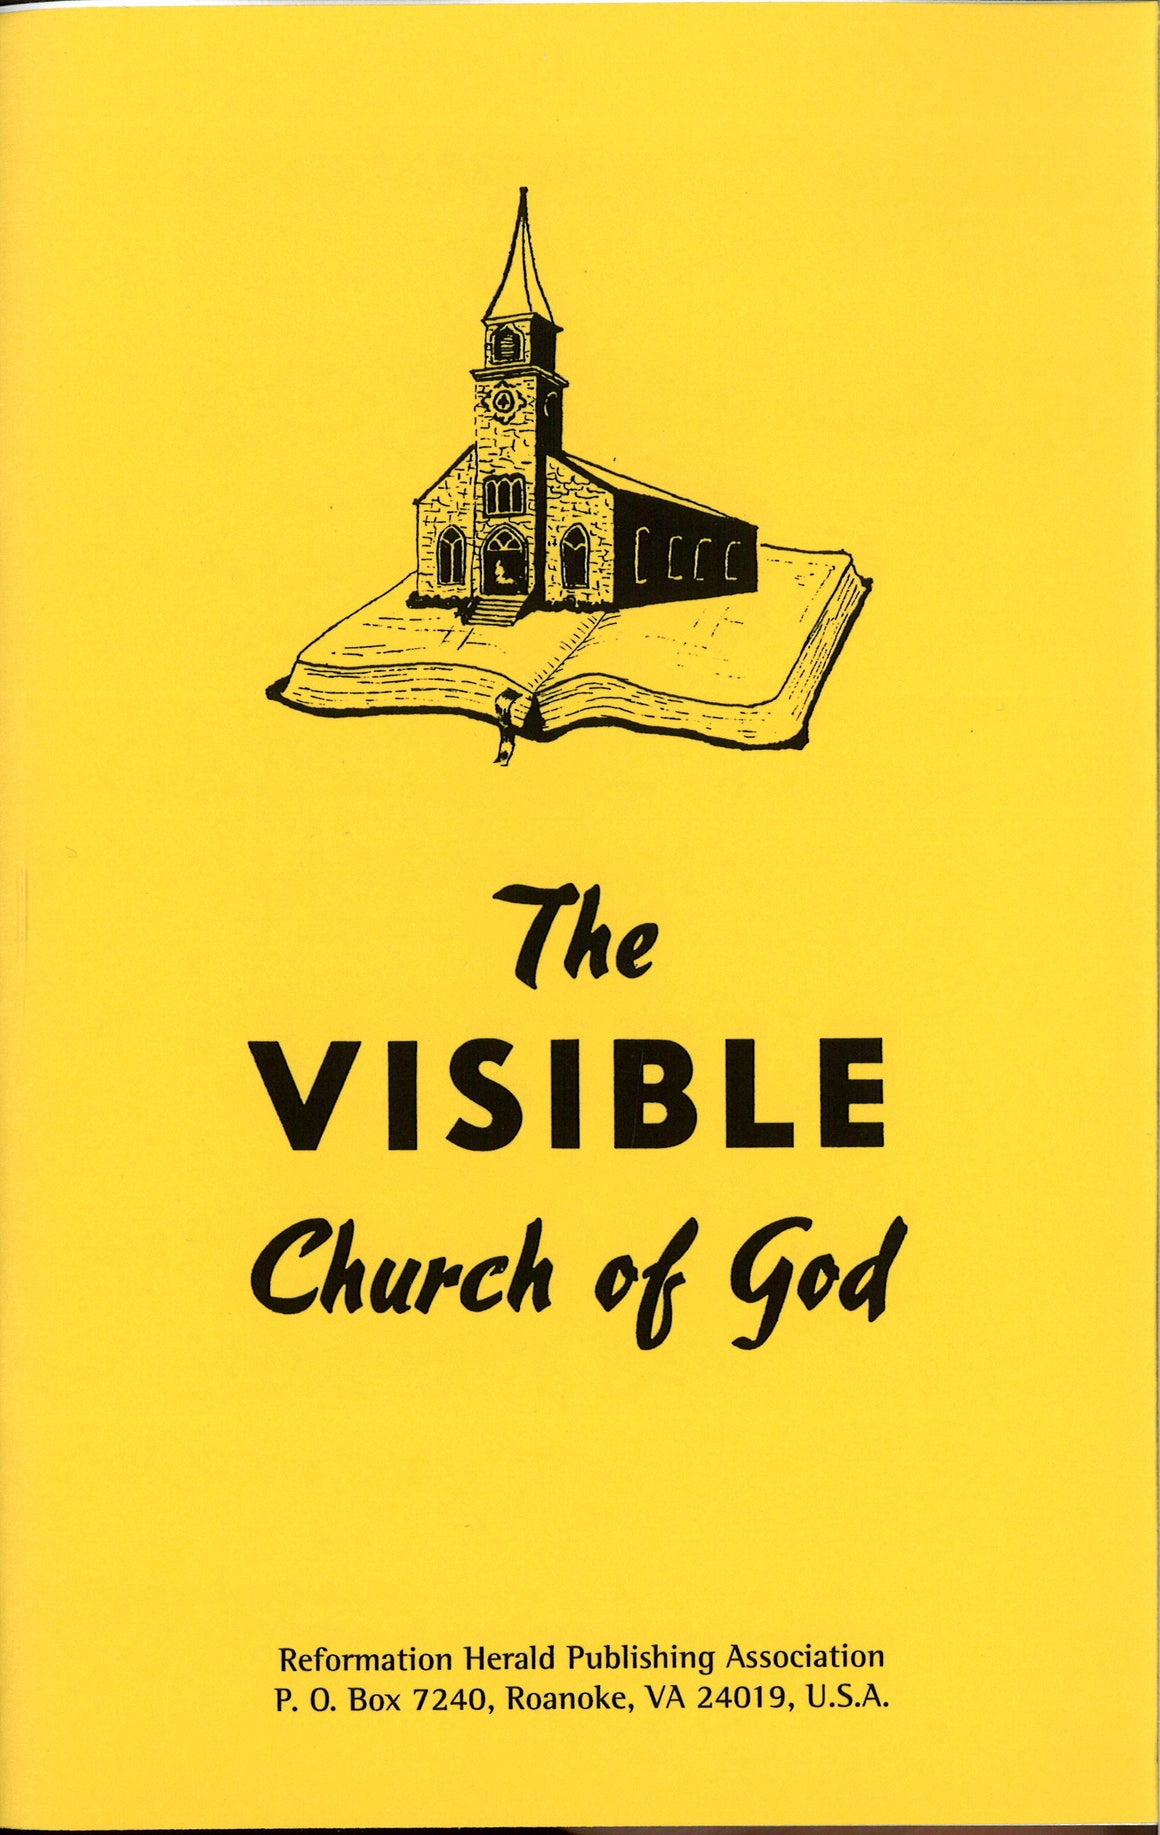 The Visible Church of God